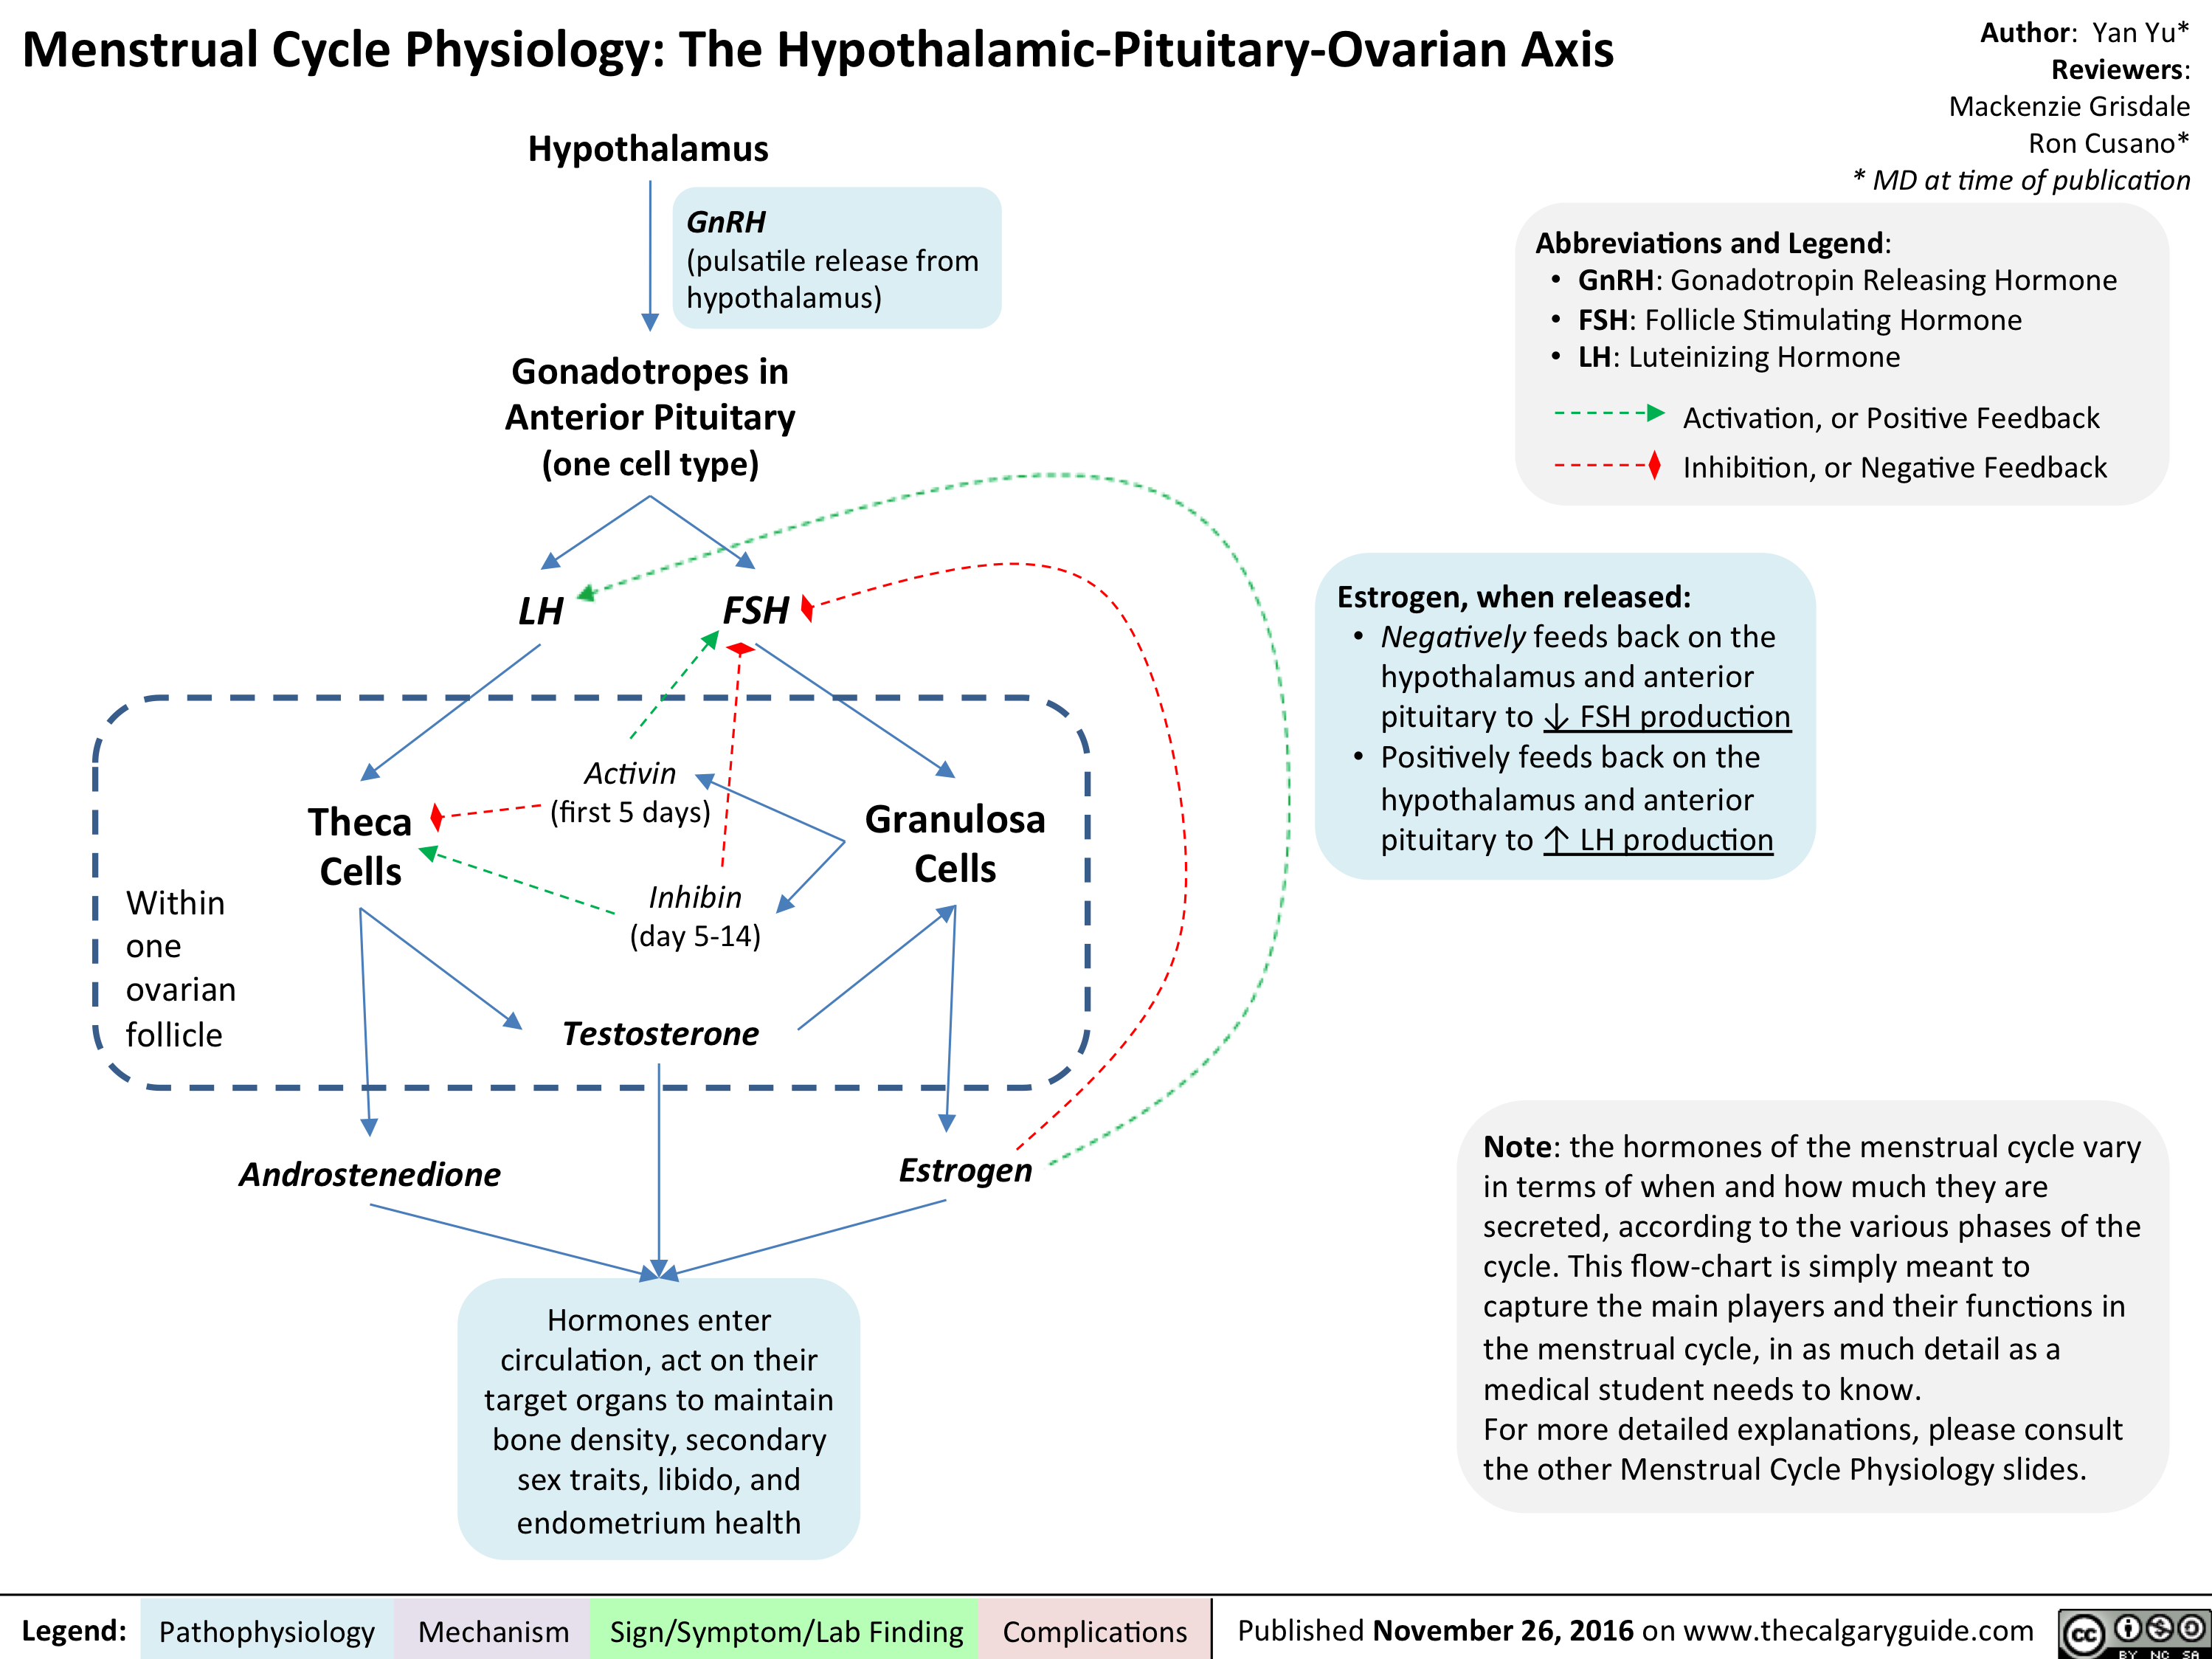 menstrual-cycle-physiology-the-hypothalamic-pituitary-ovarian-axis